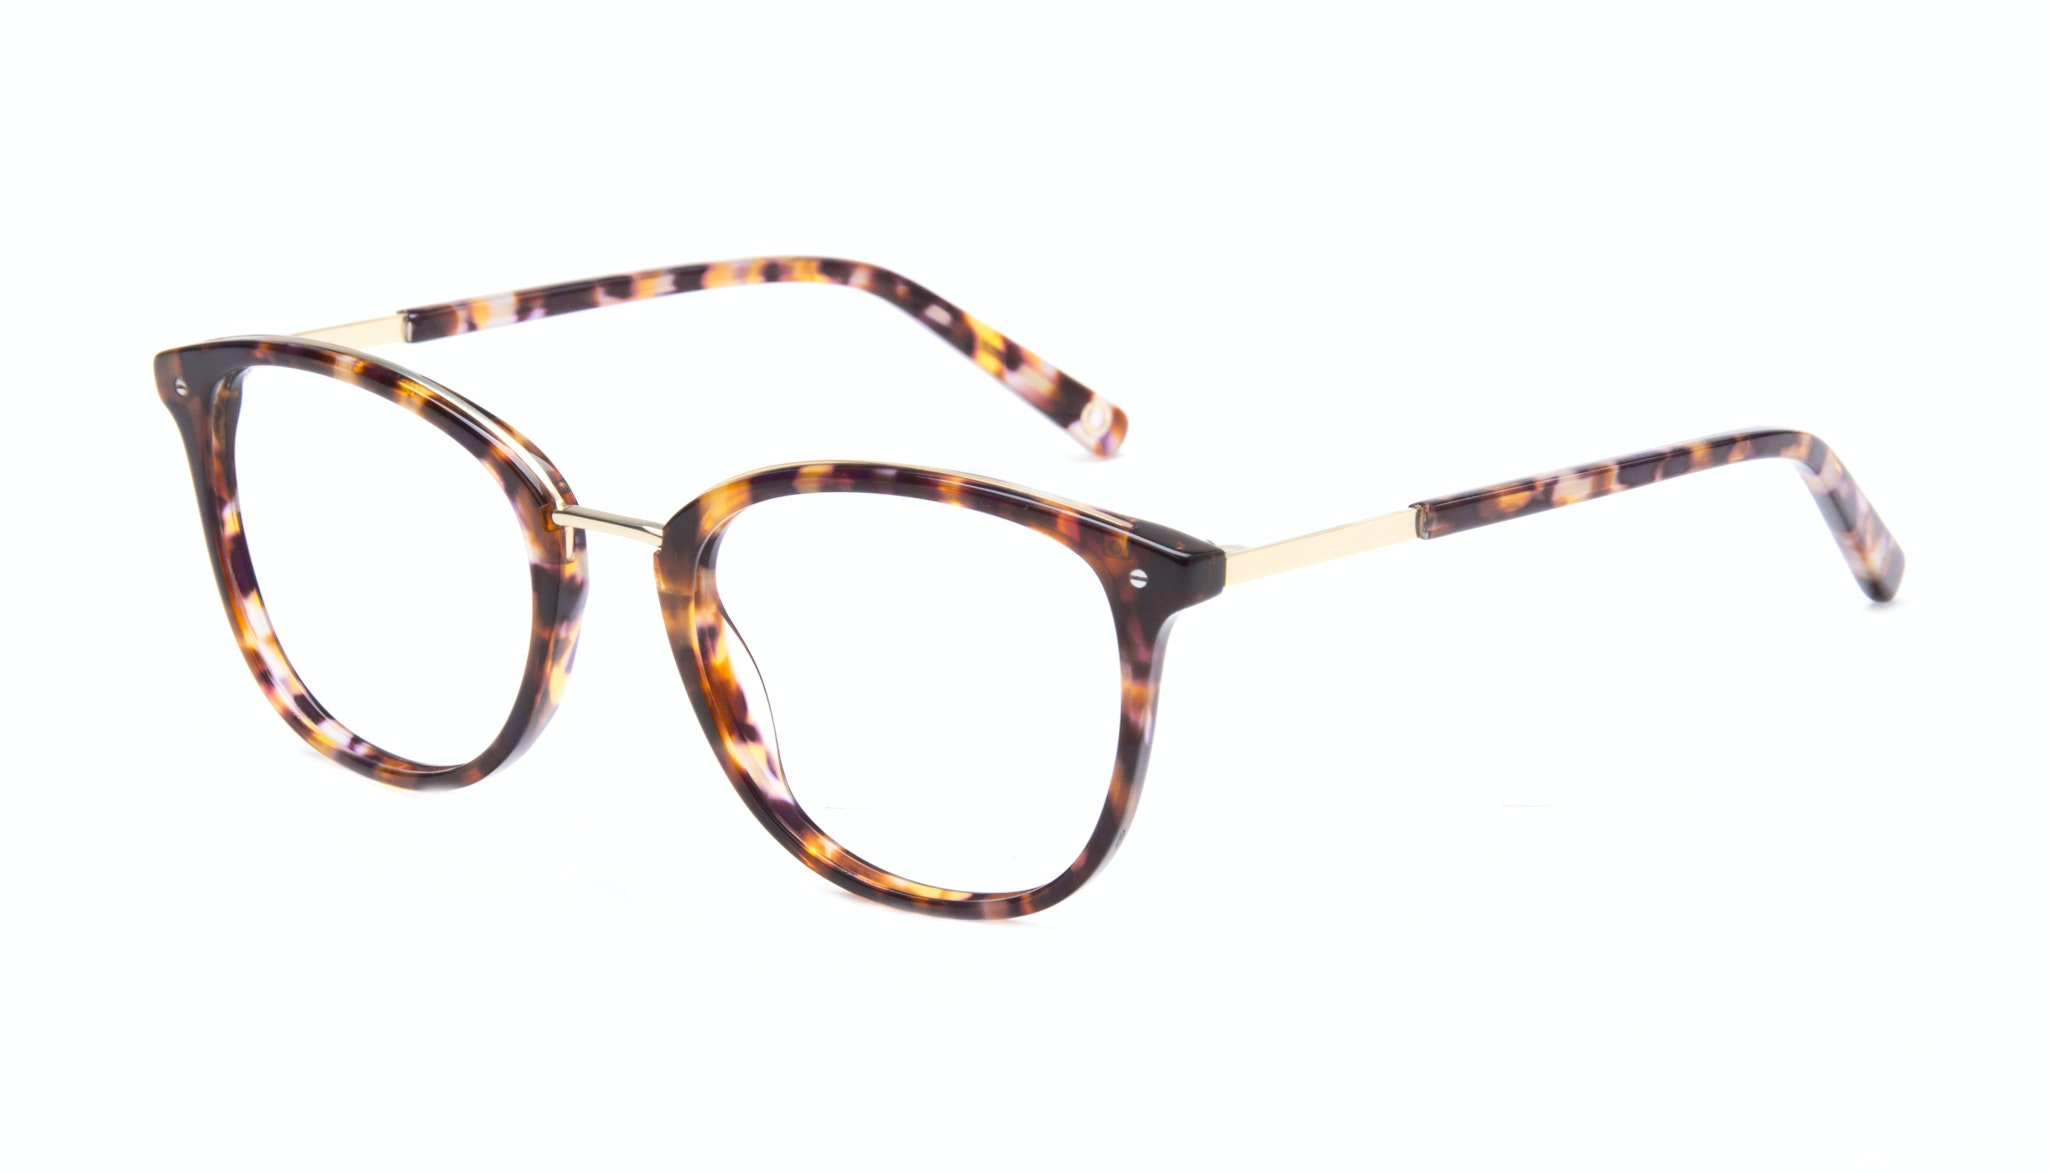 Affordable Fashion Glasses Square Round Eyeglasses Women Ella Dark Tortoise Tilt